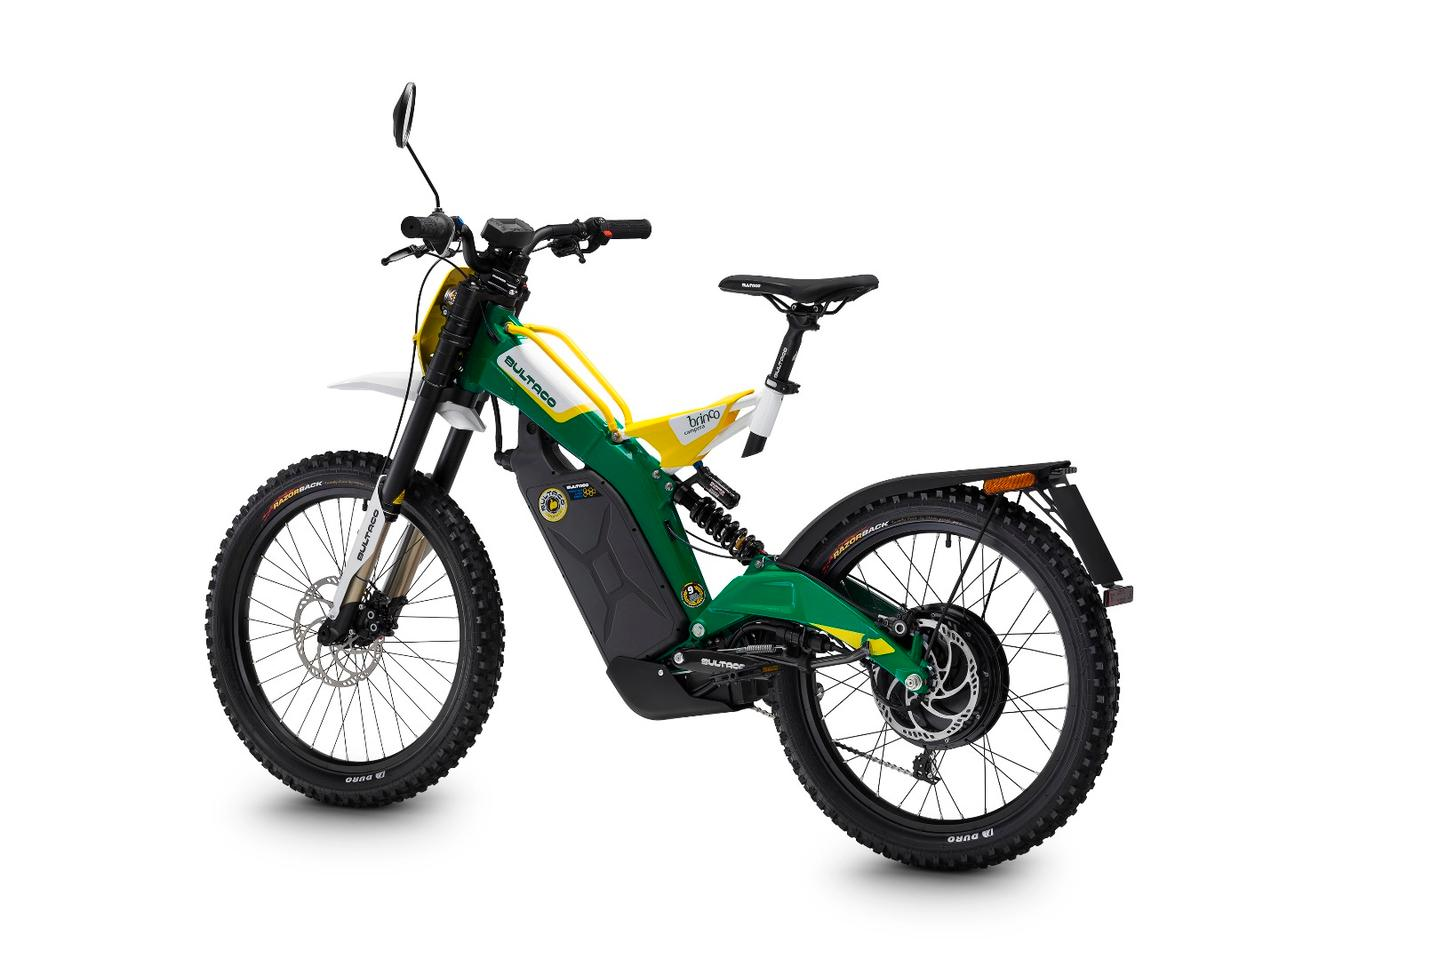 The Brinco C is designed for comfort on and off road